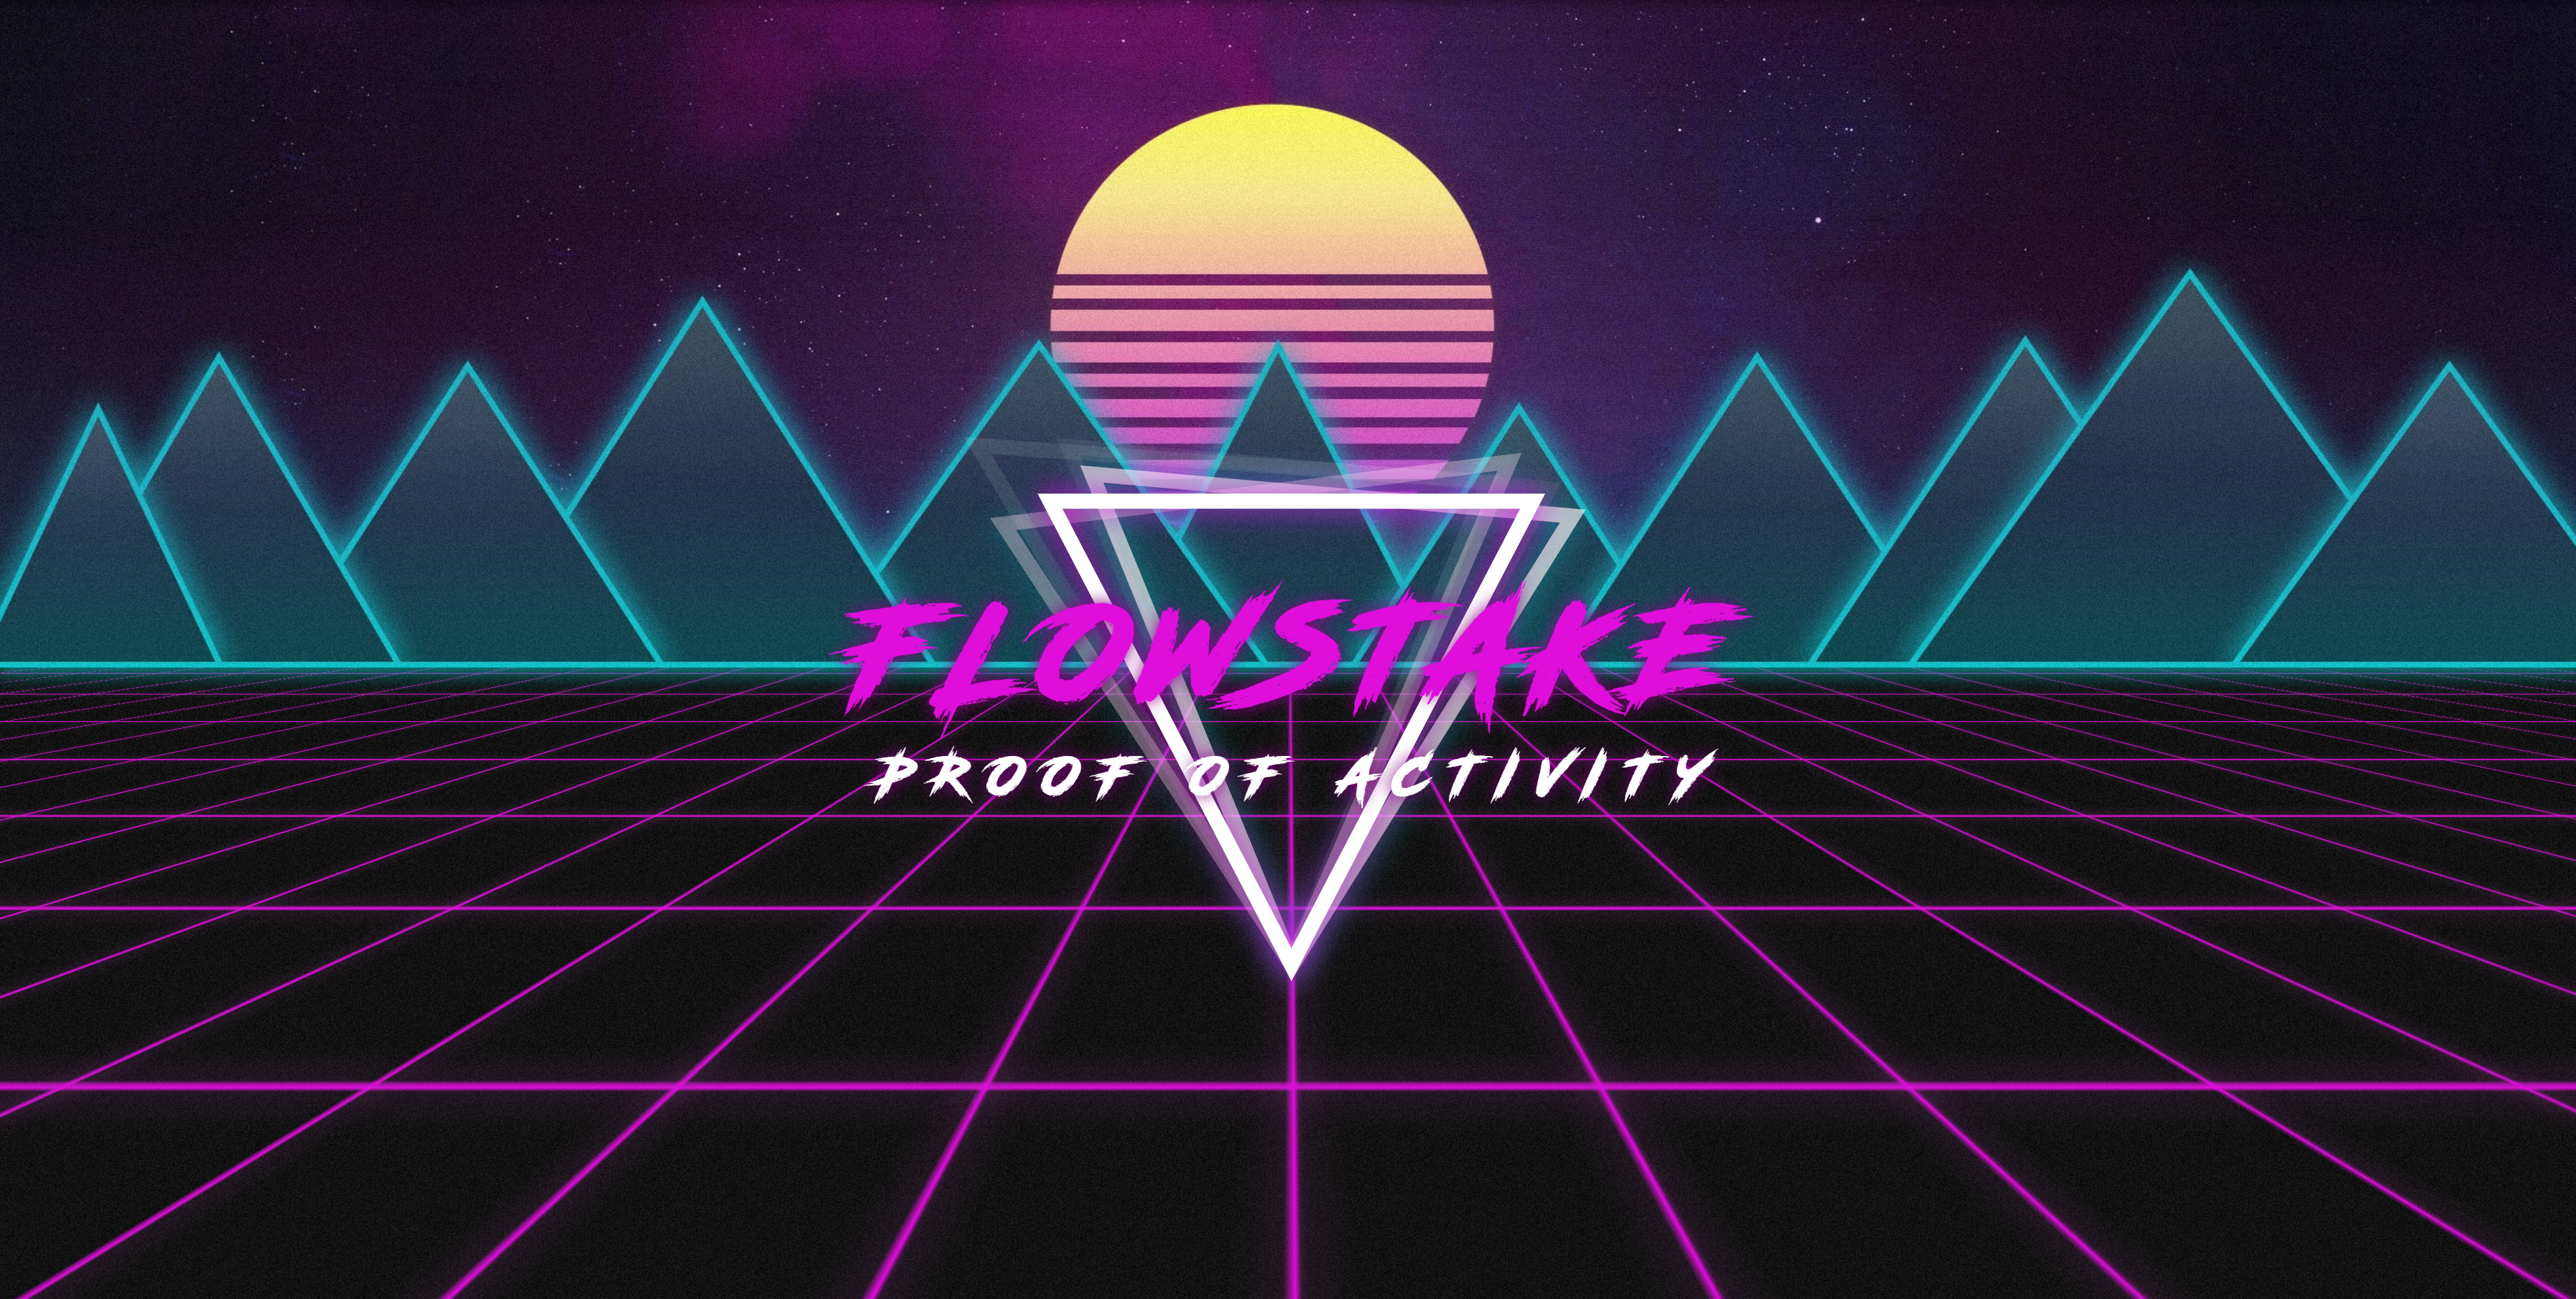 Flowstake – Proof of Activity